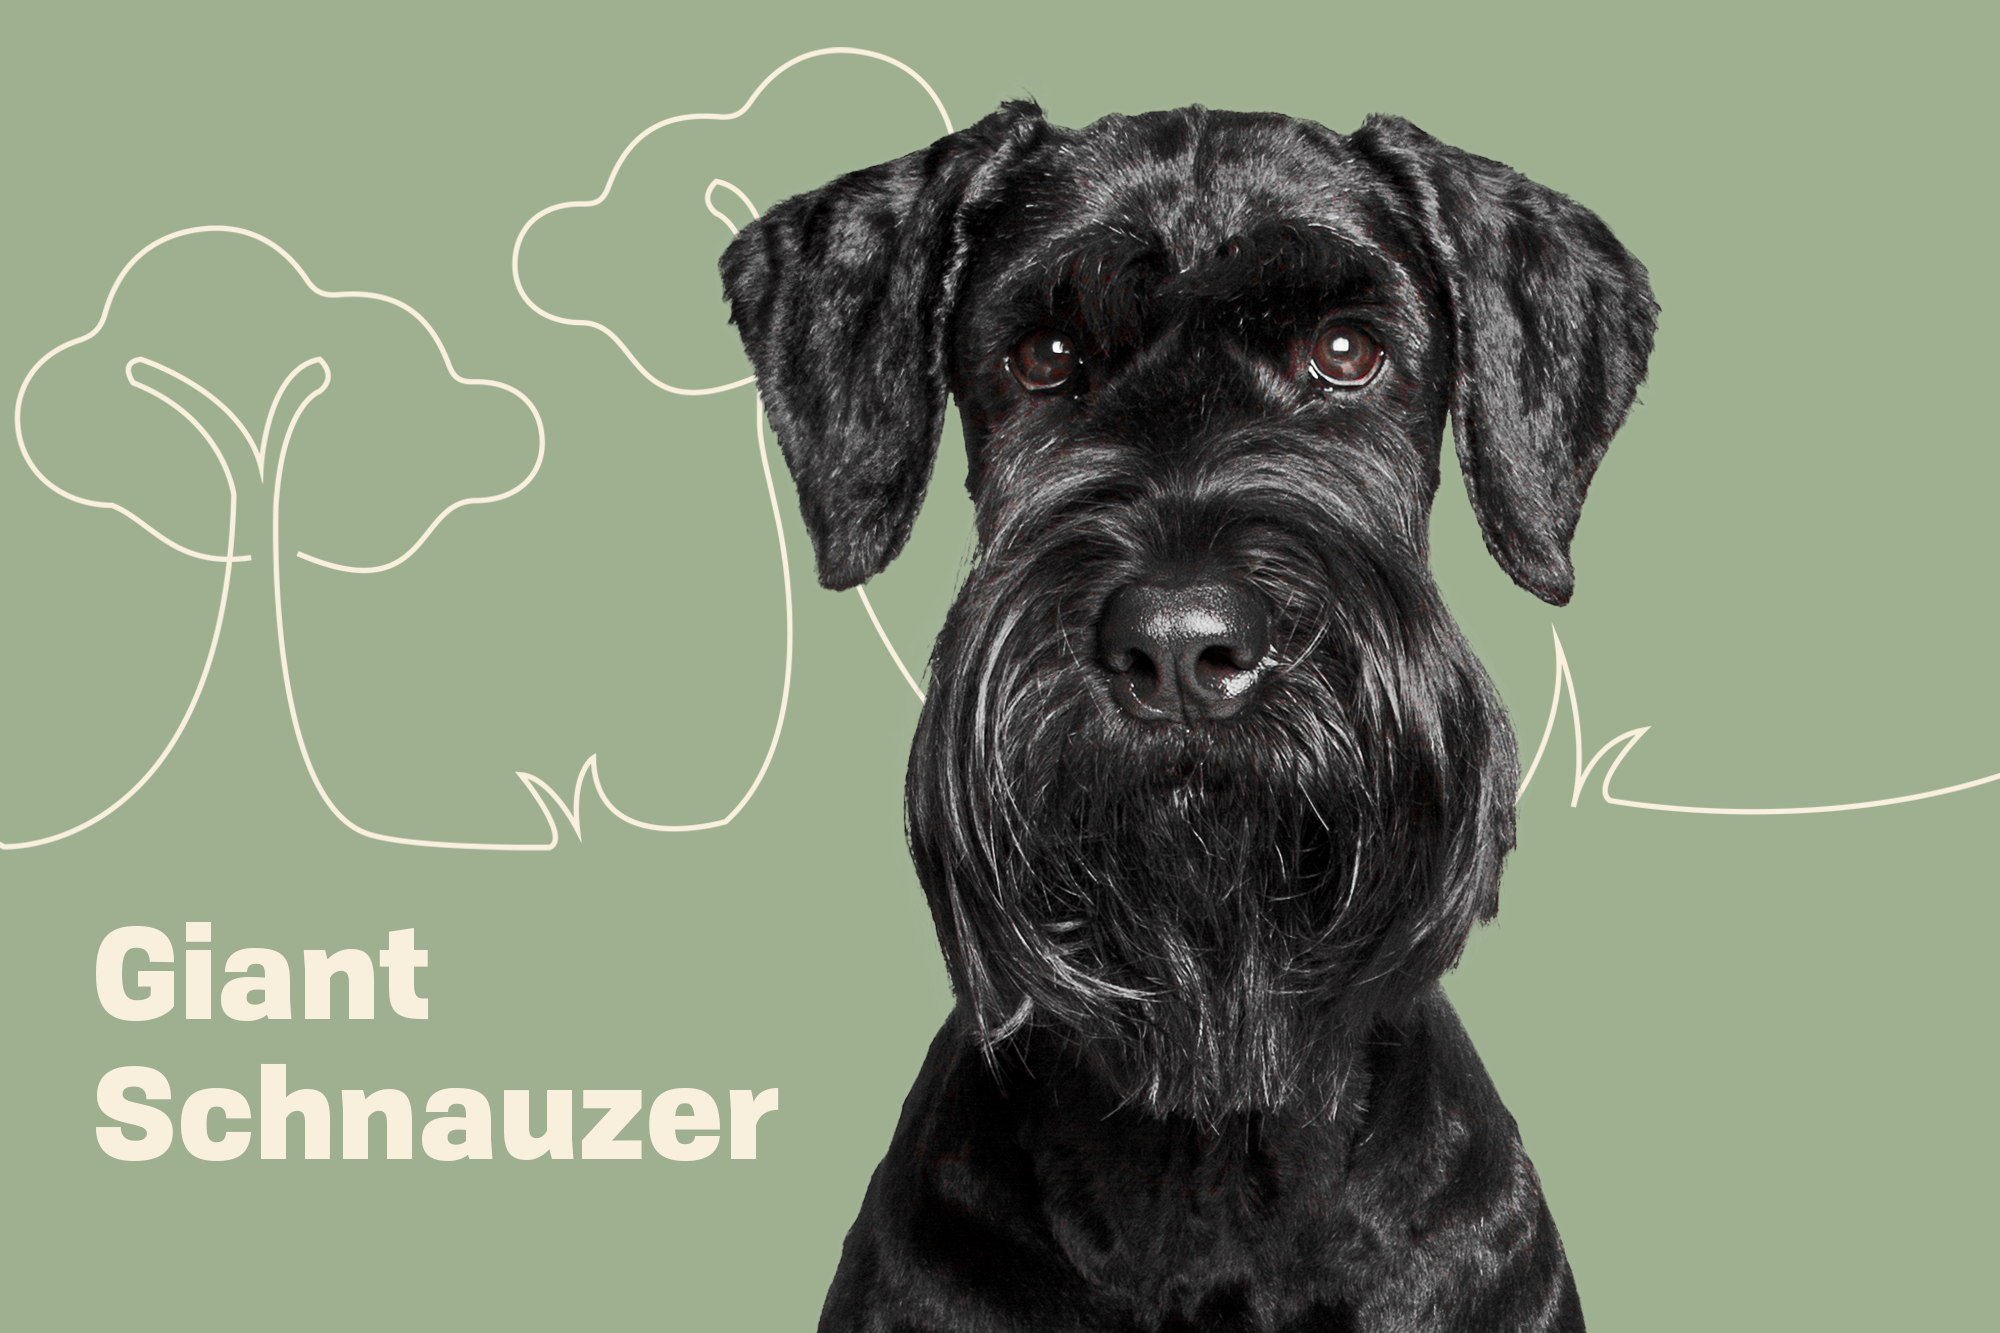 Giant Schnauzer Breed Photo